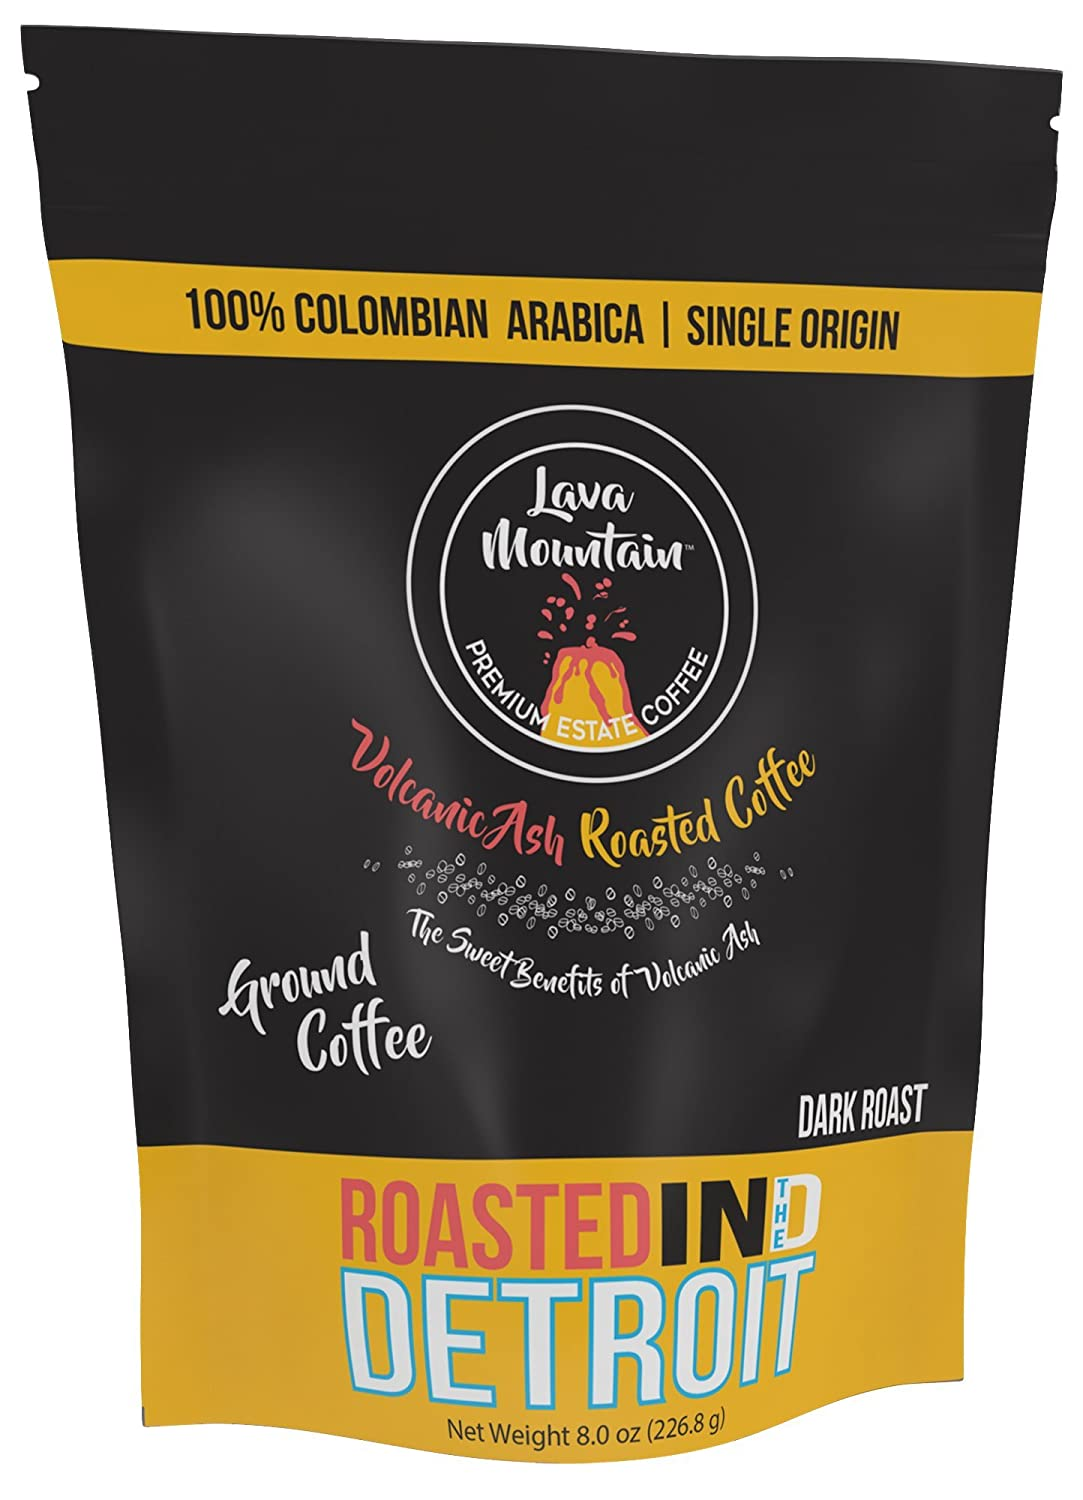 Lava Mountain Single Origin Colombia 8 oz Ground Coffee, Dark Roast Image